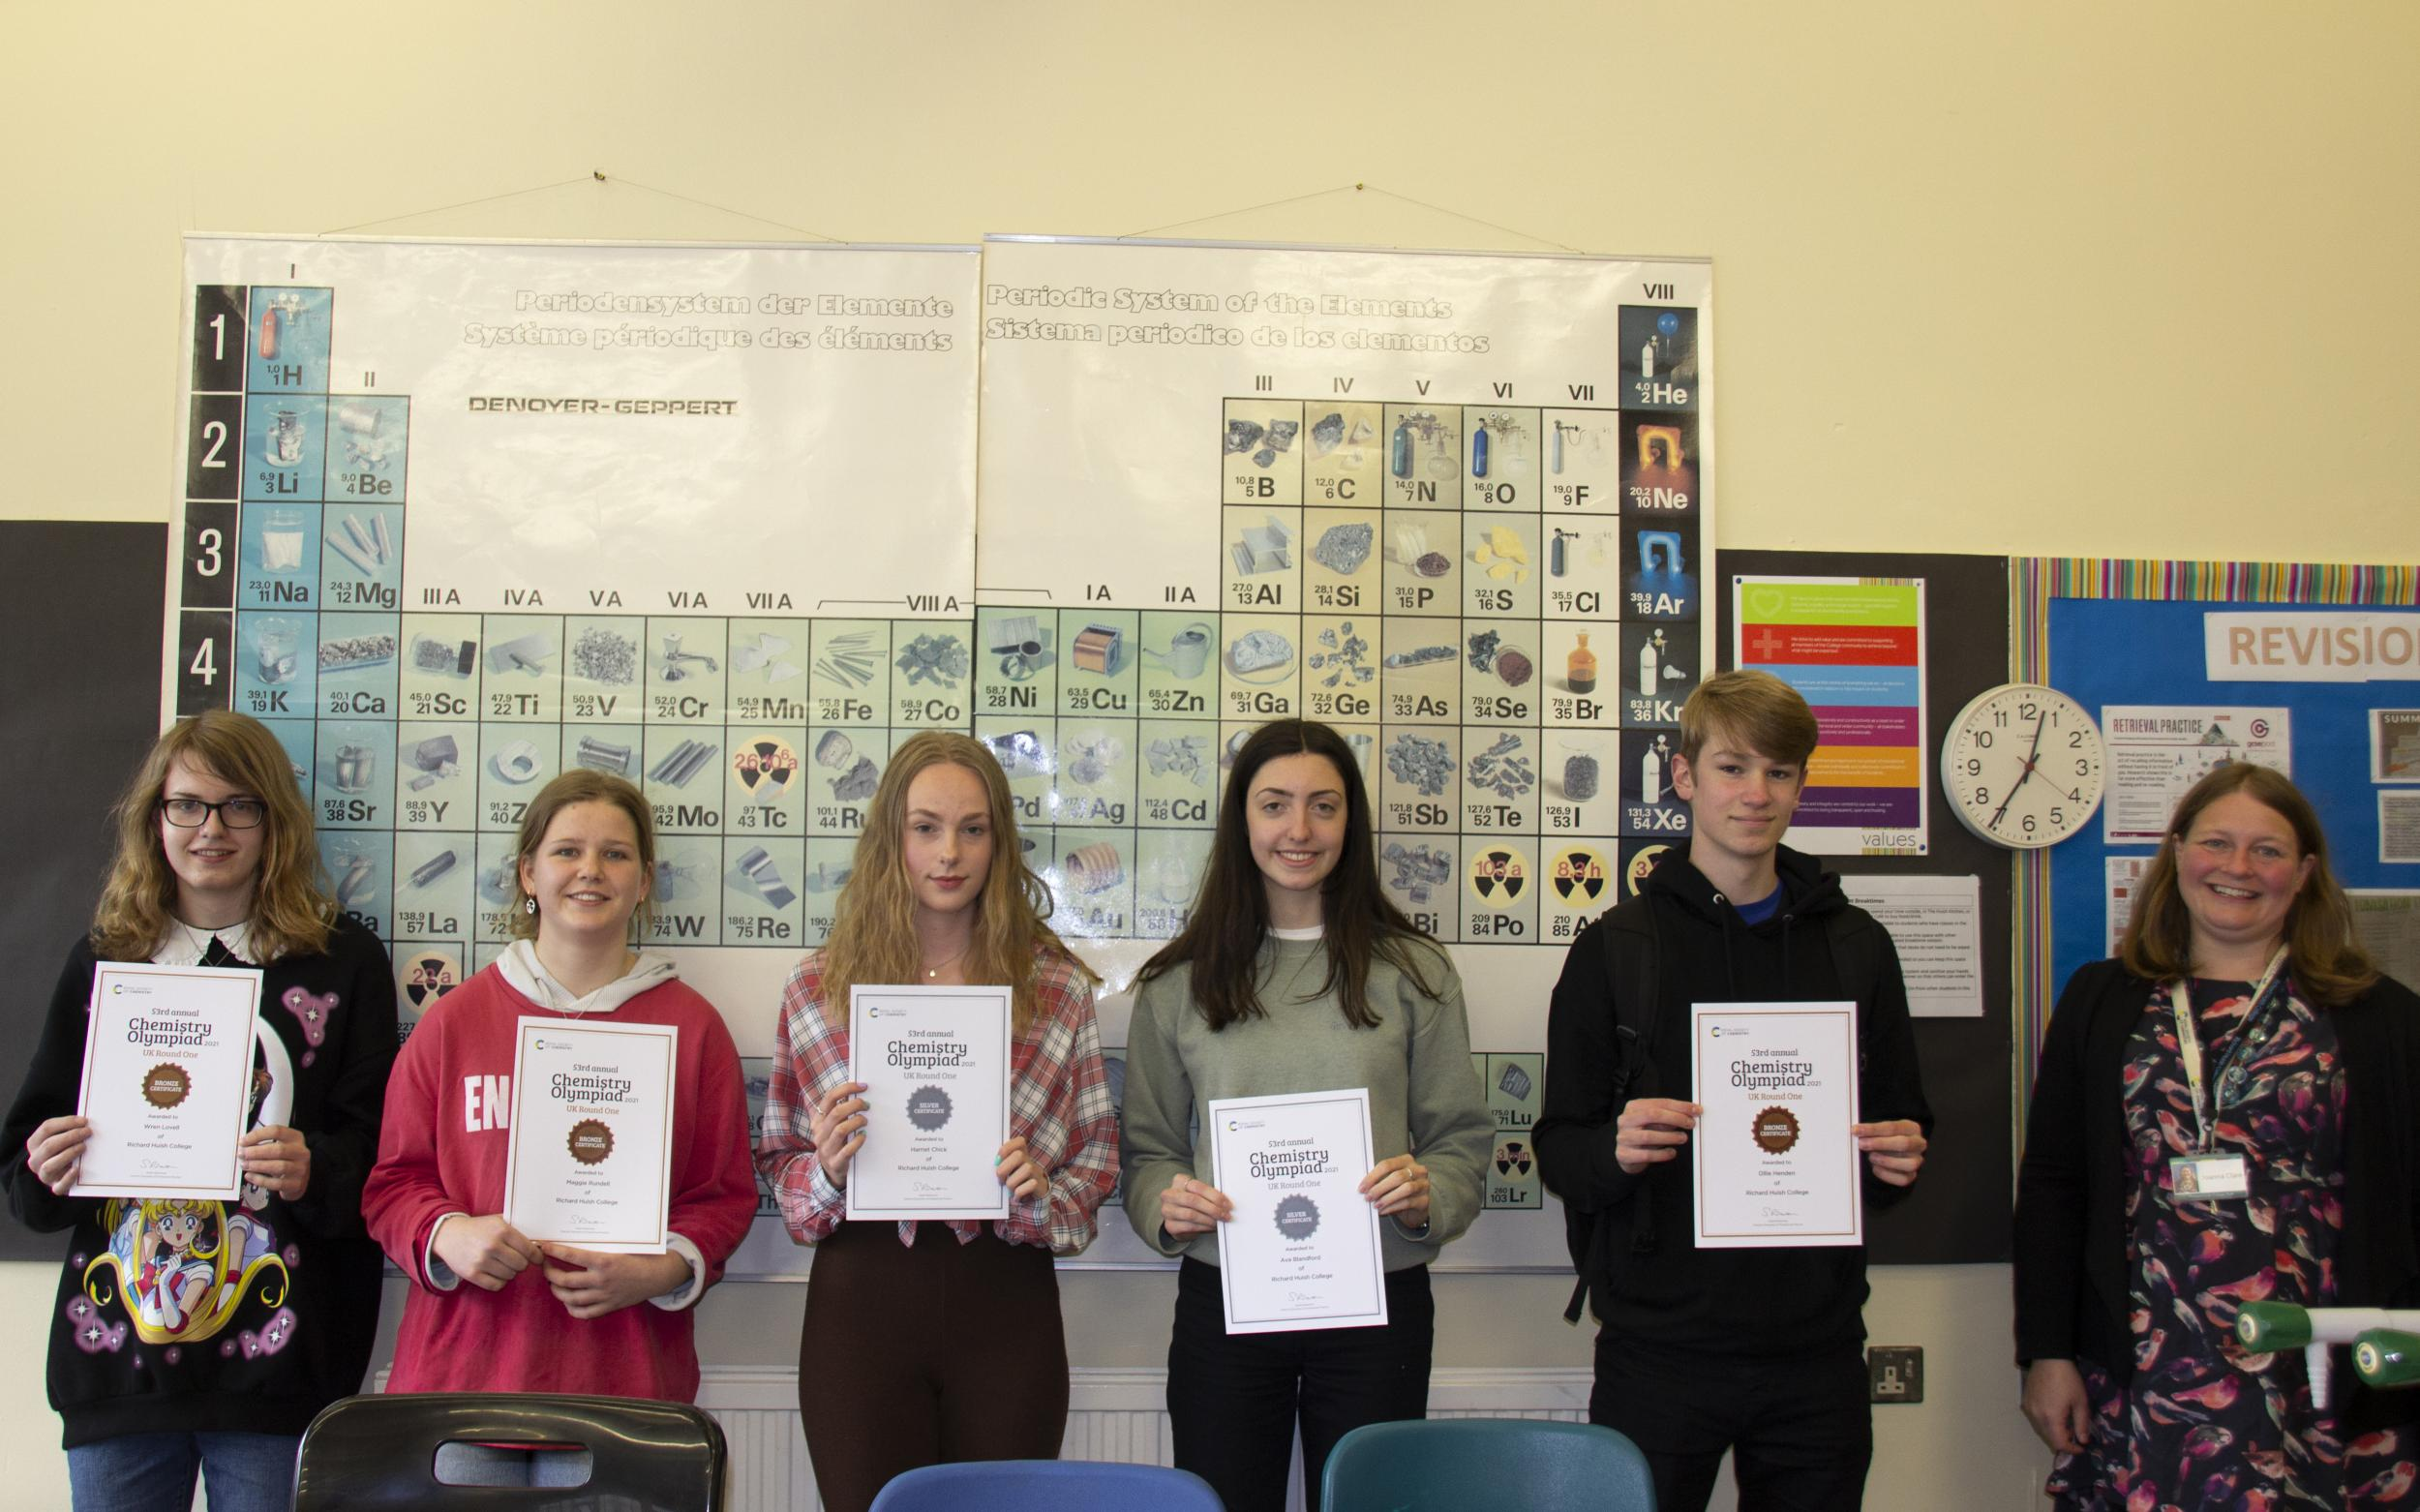 Chemistry students holding their certificates